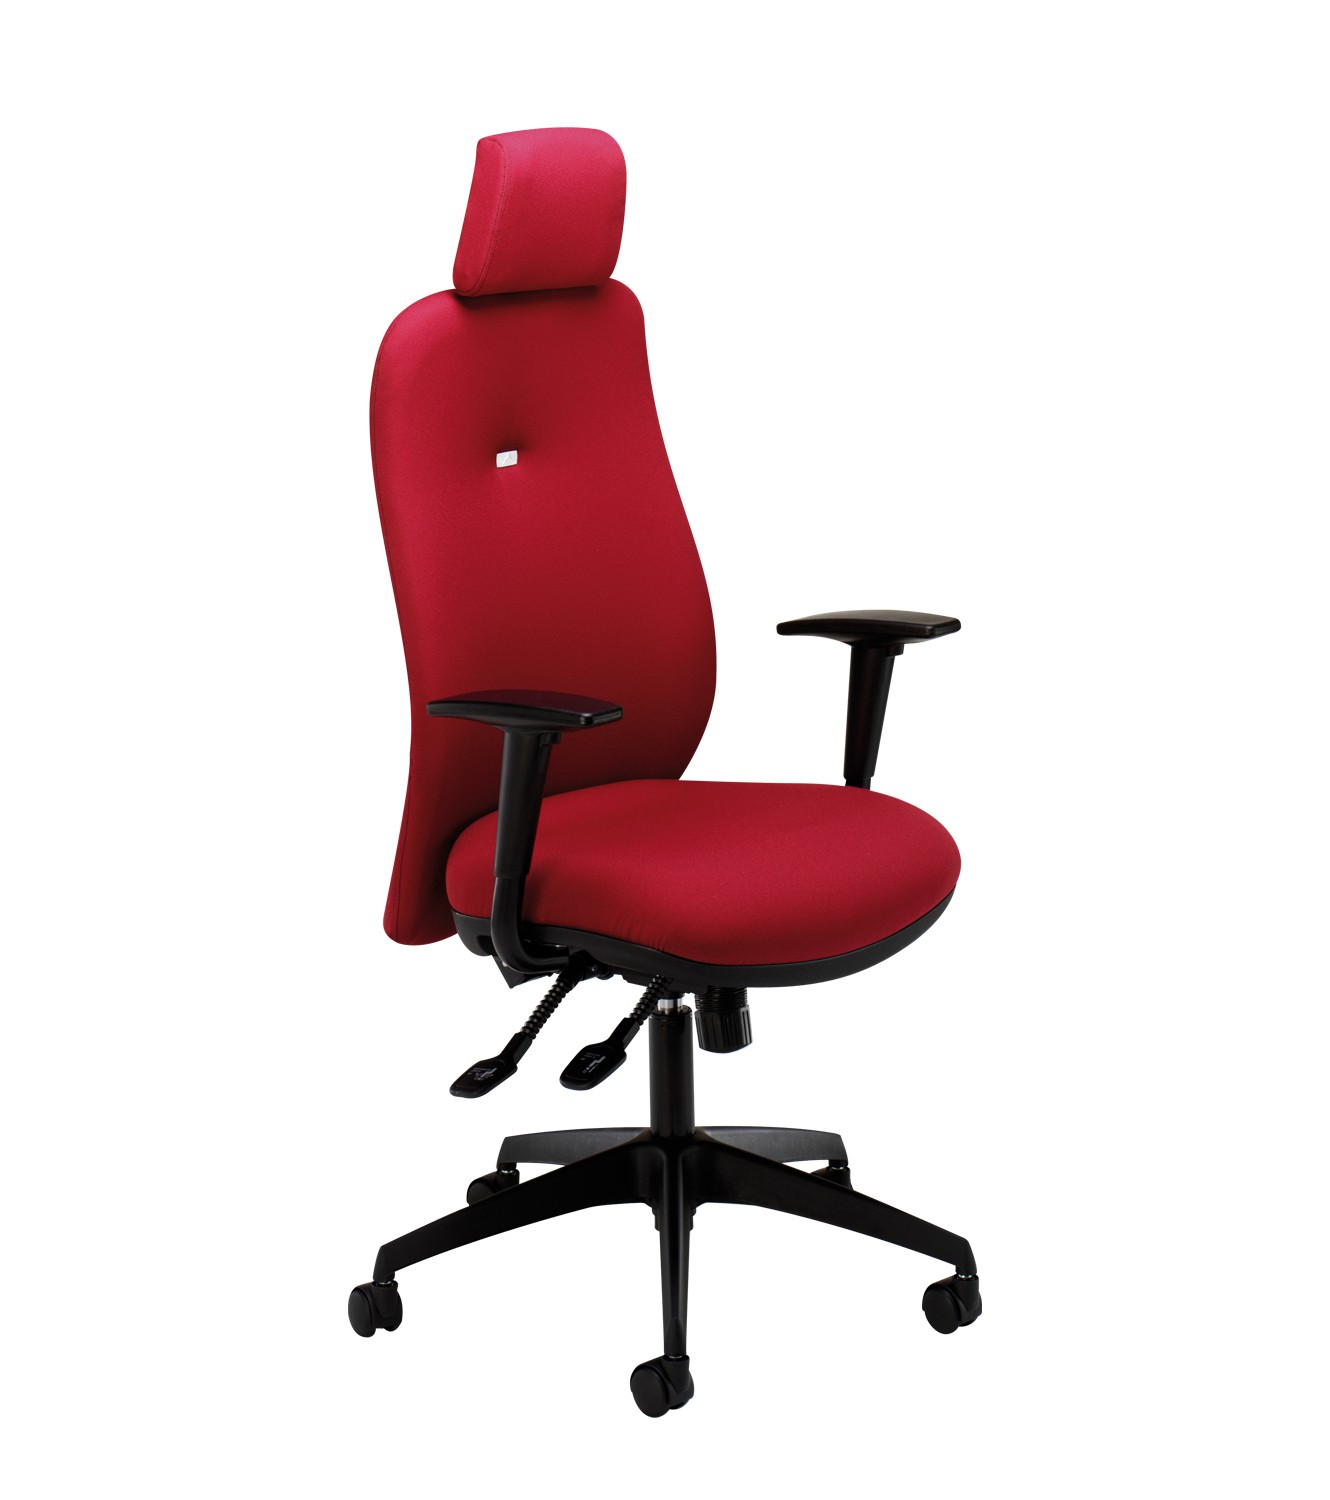 High Back Synchro Task Chair with headrest,adjustable arms & inflatable lumbar support